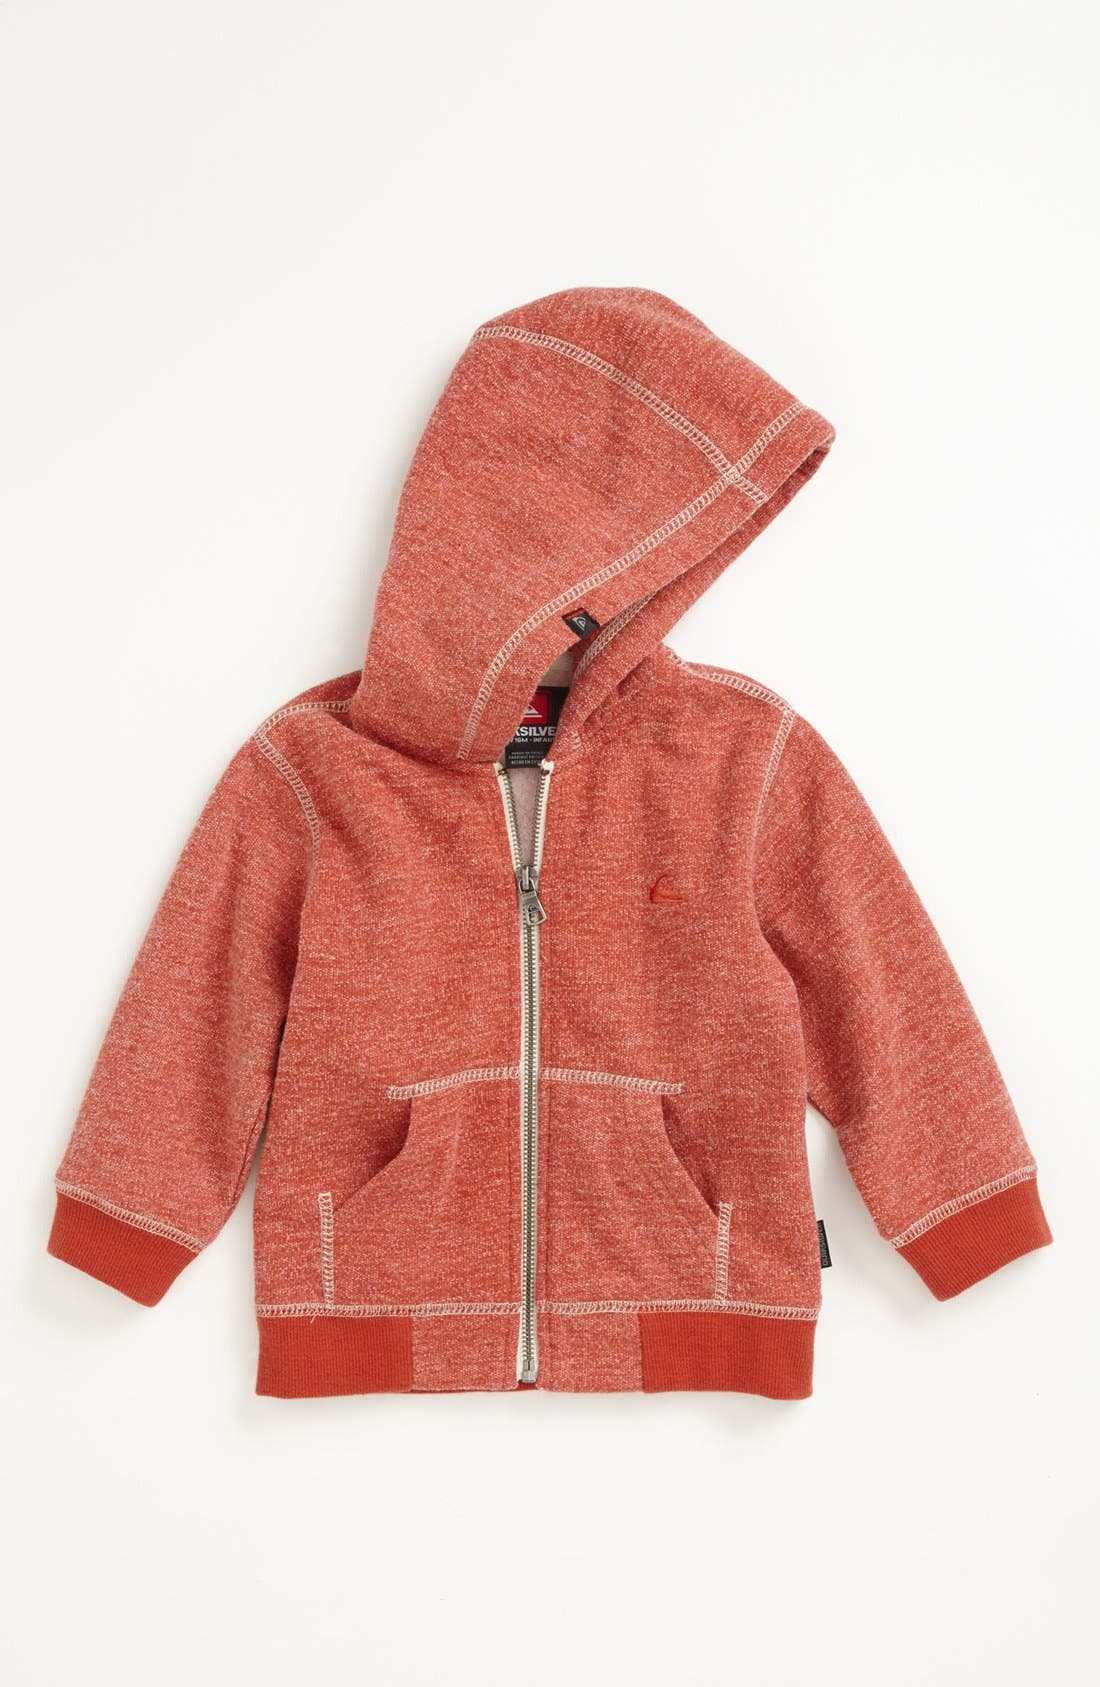 Main Image - Quiksilver 'Hartley' Hoodie (Toddler Boys)